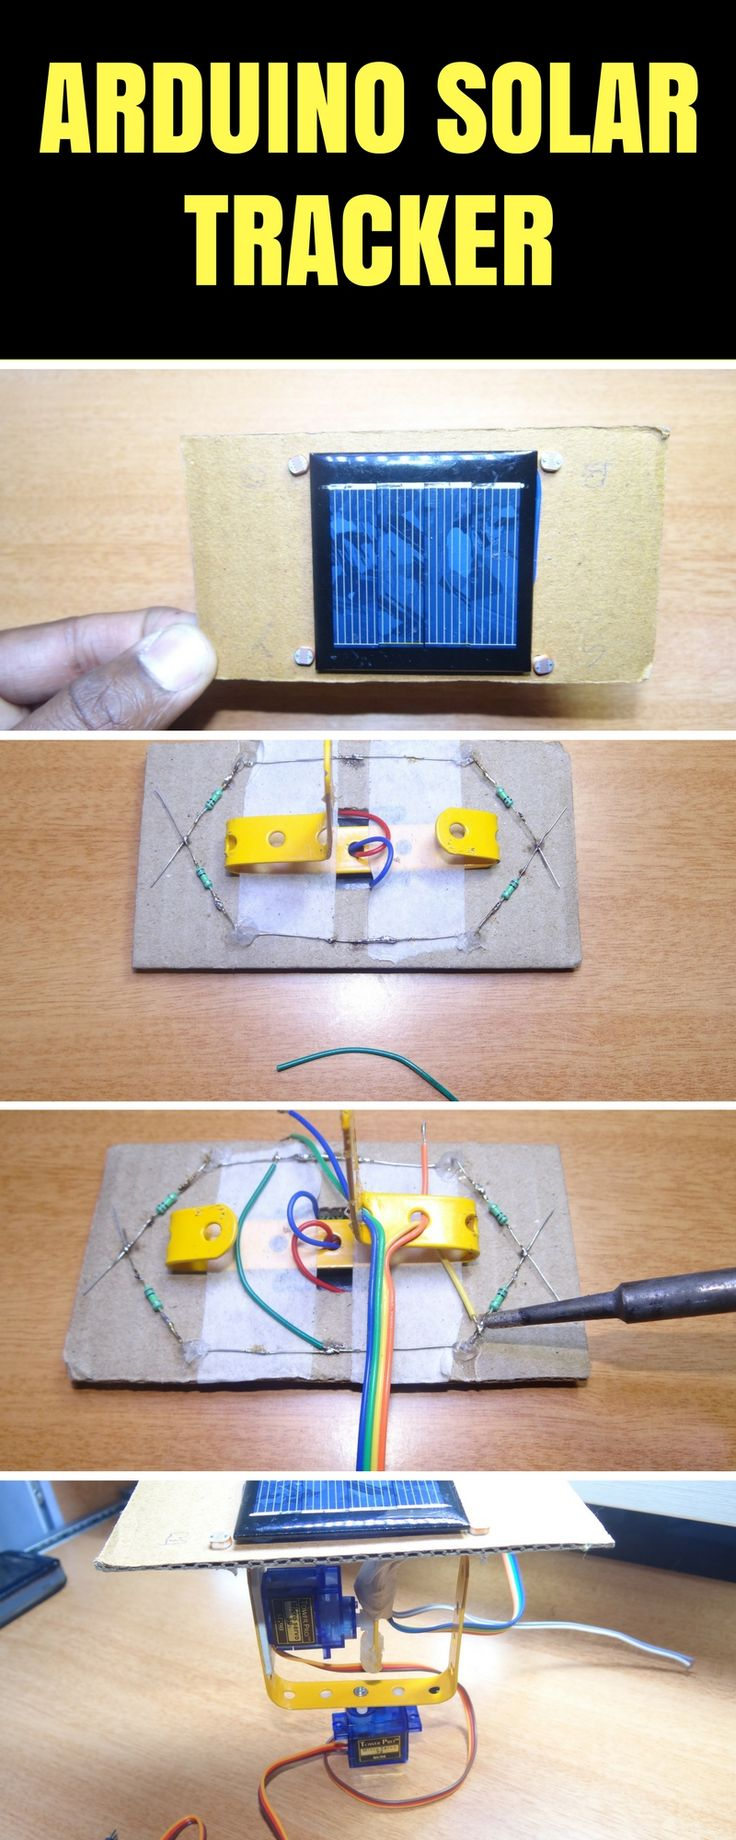 53 Best Arduino Images By Mike Gillett On Pinterest Bricolage Attiny Candle Electronicslab